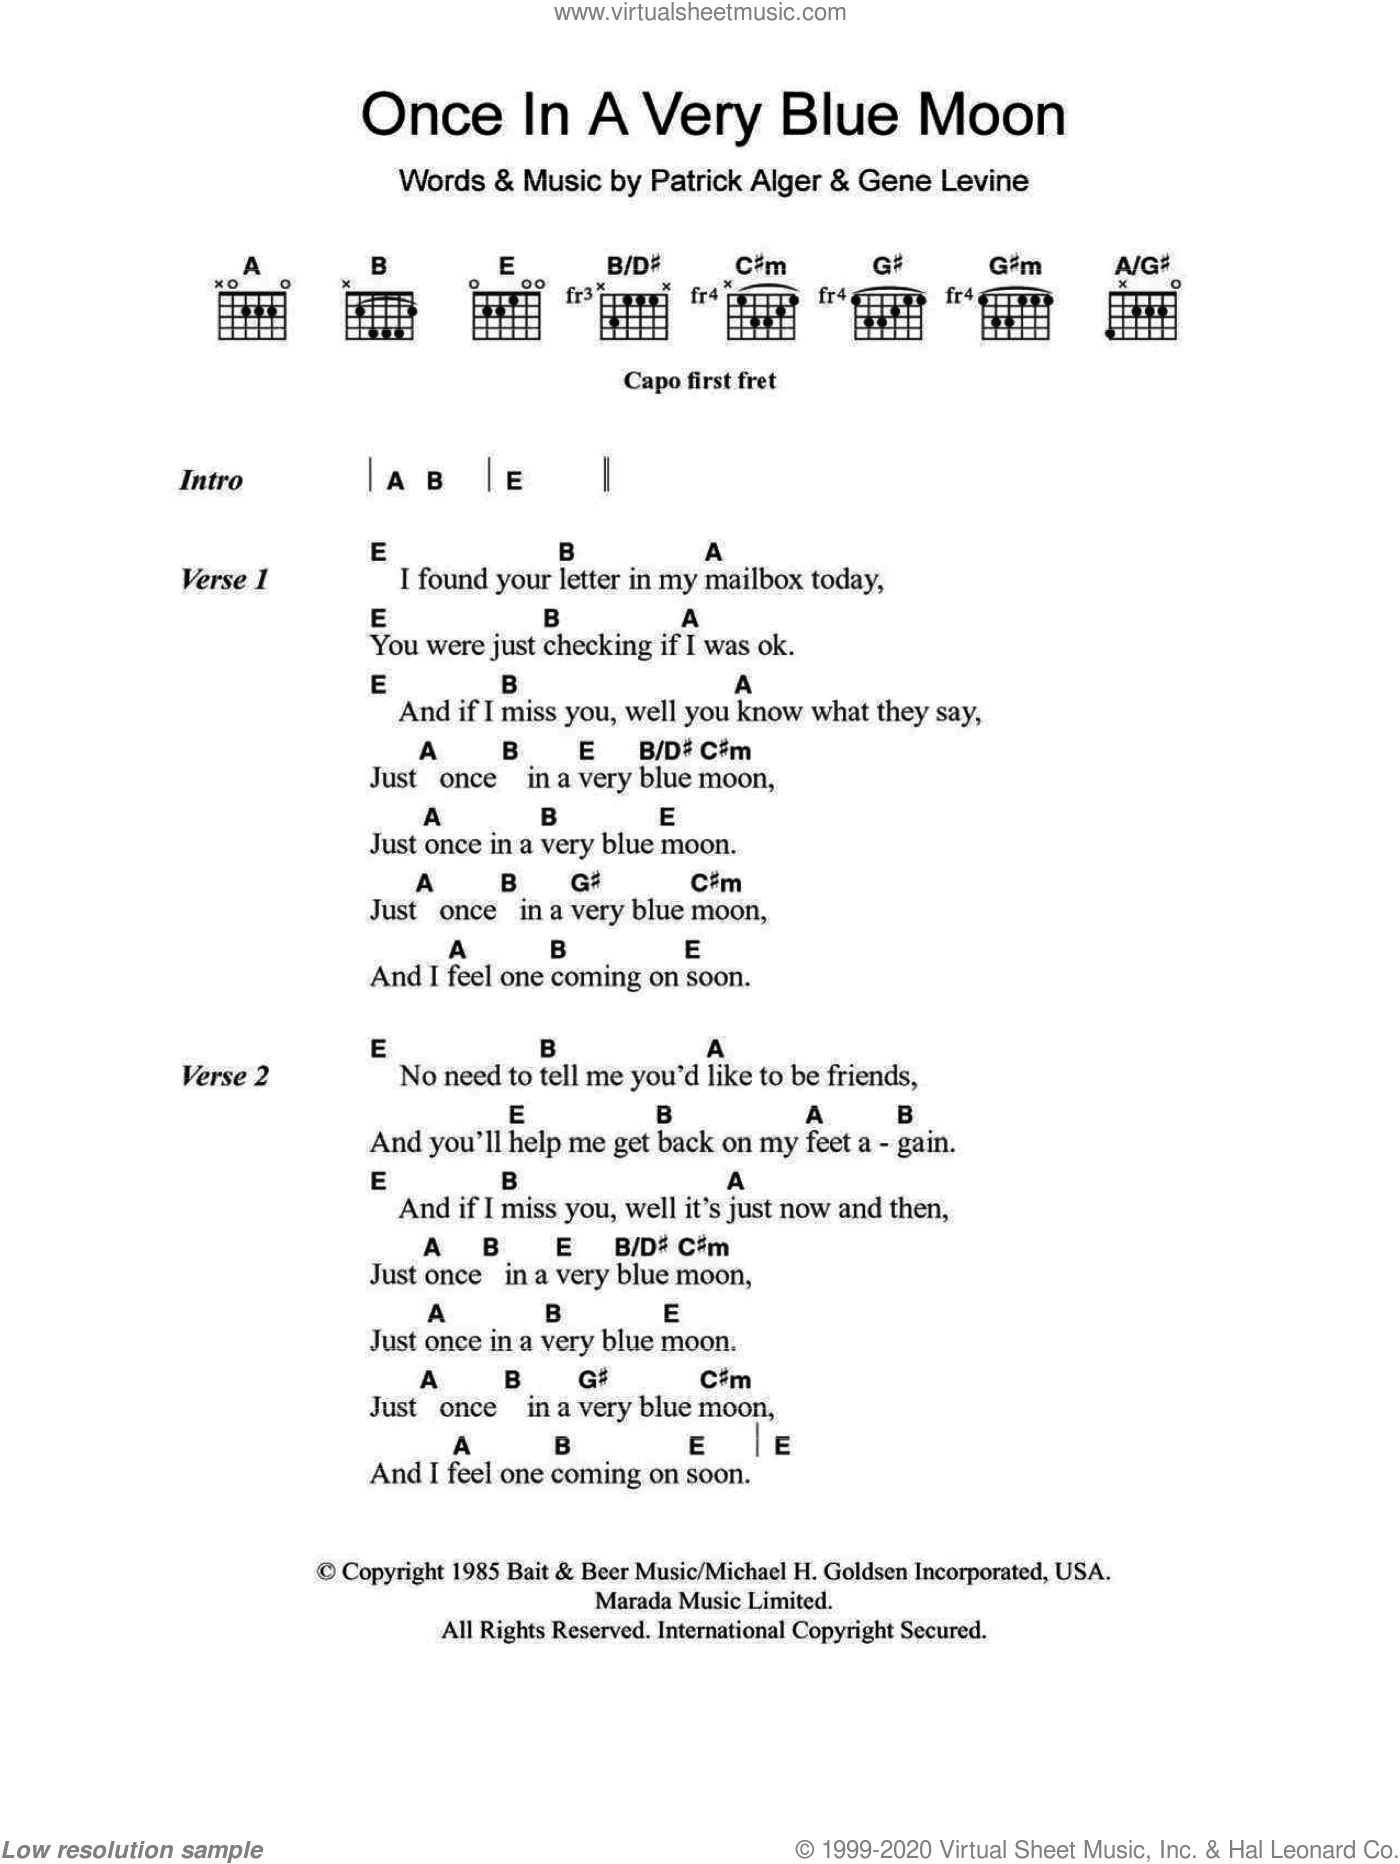 Once In A Very Blue Moon sheet music for guitar (chords) by Patrick Alger